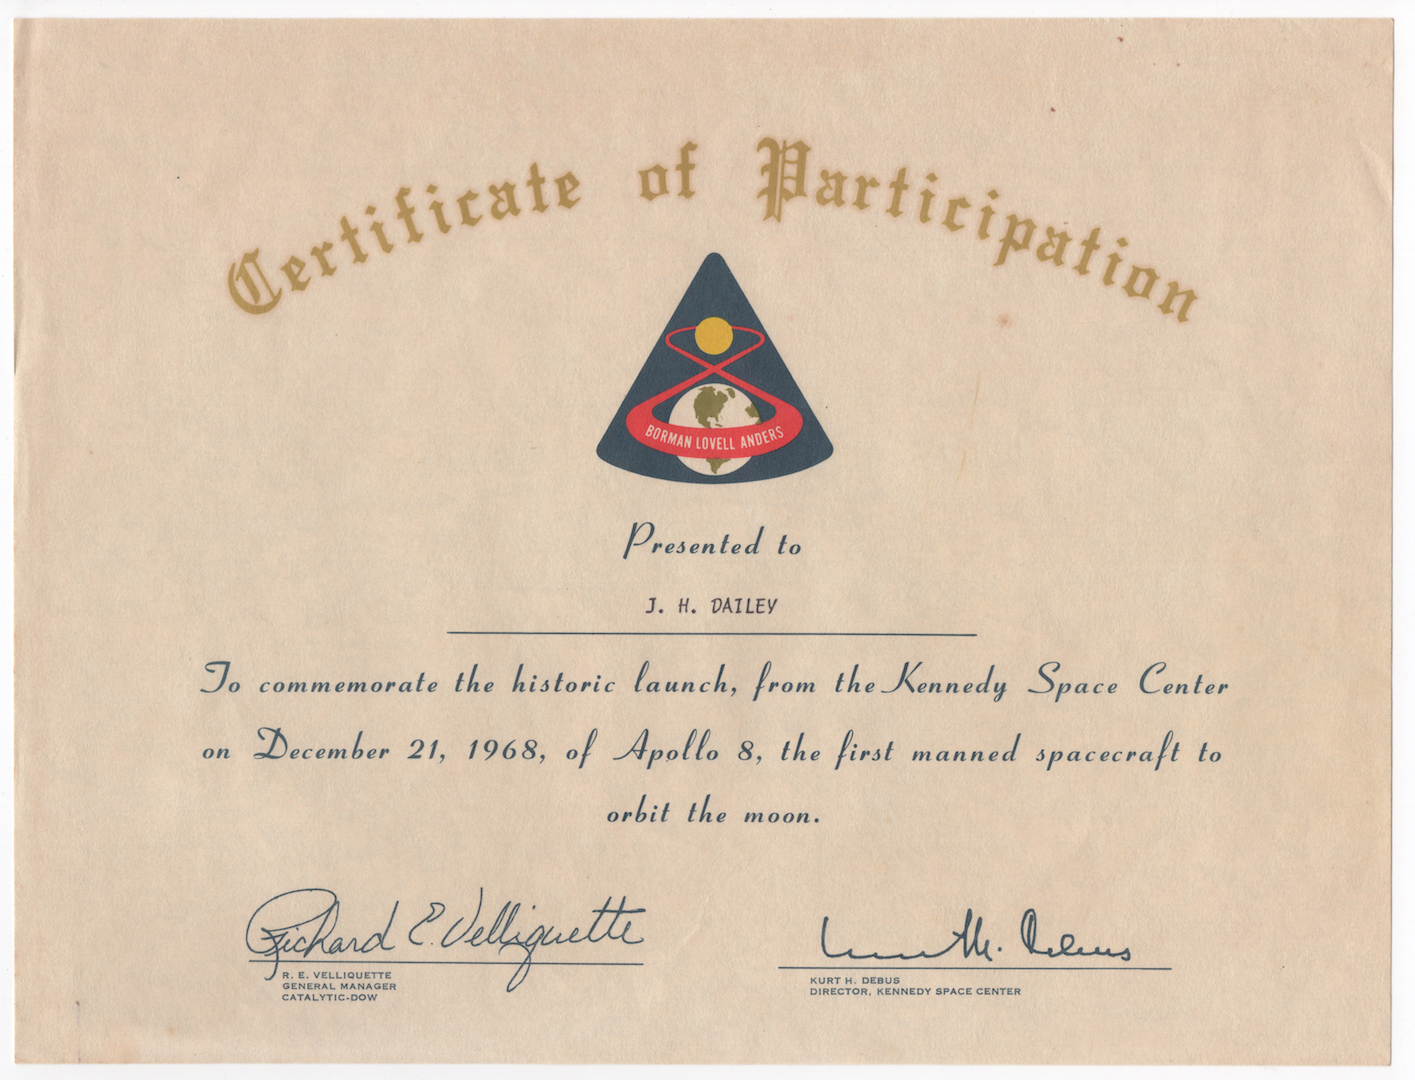 ERM-1968-DOCUMENT-J_H_DAILEY-FRONT.jpg